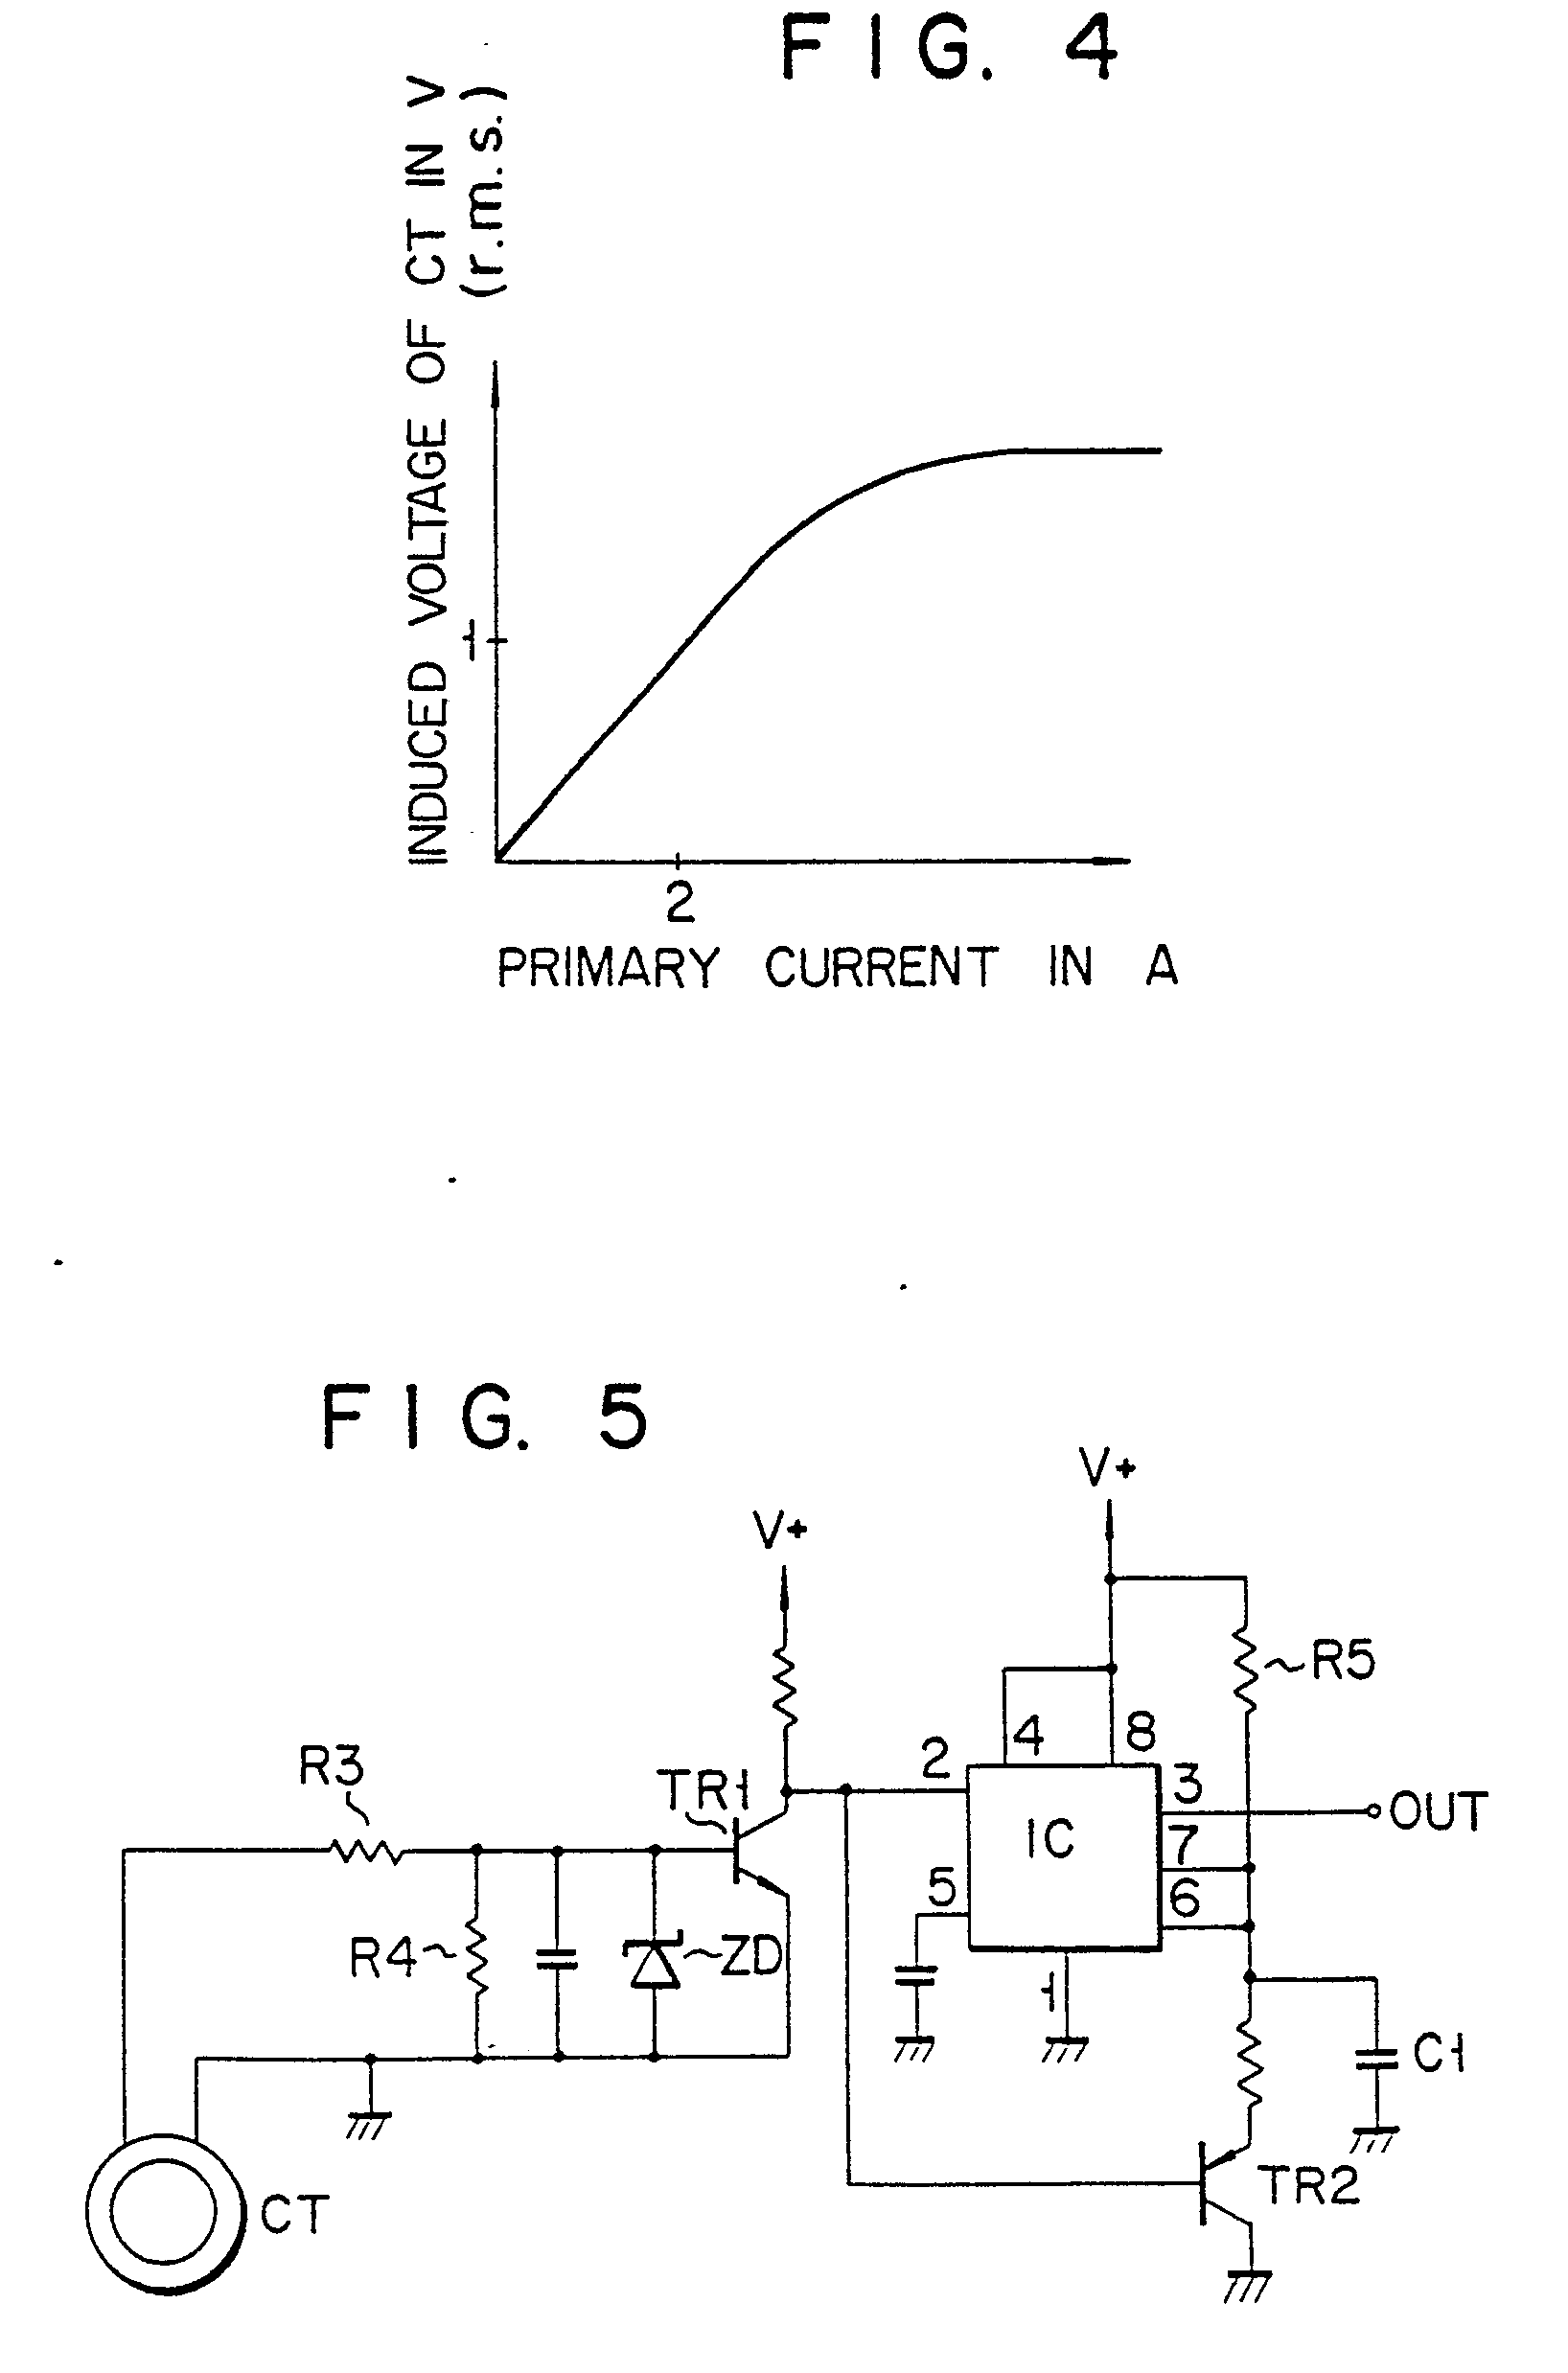 an ac current detection circuit for a rotor driving supply source